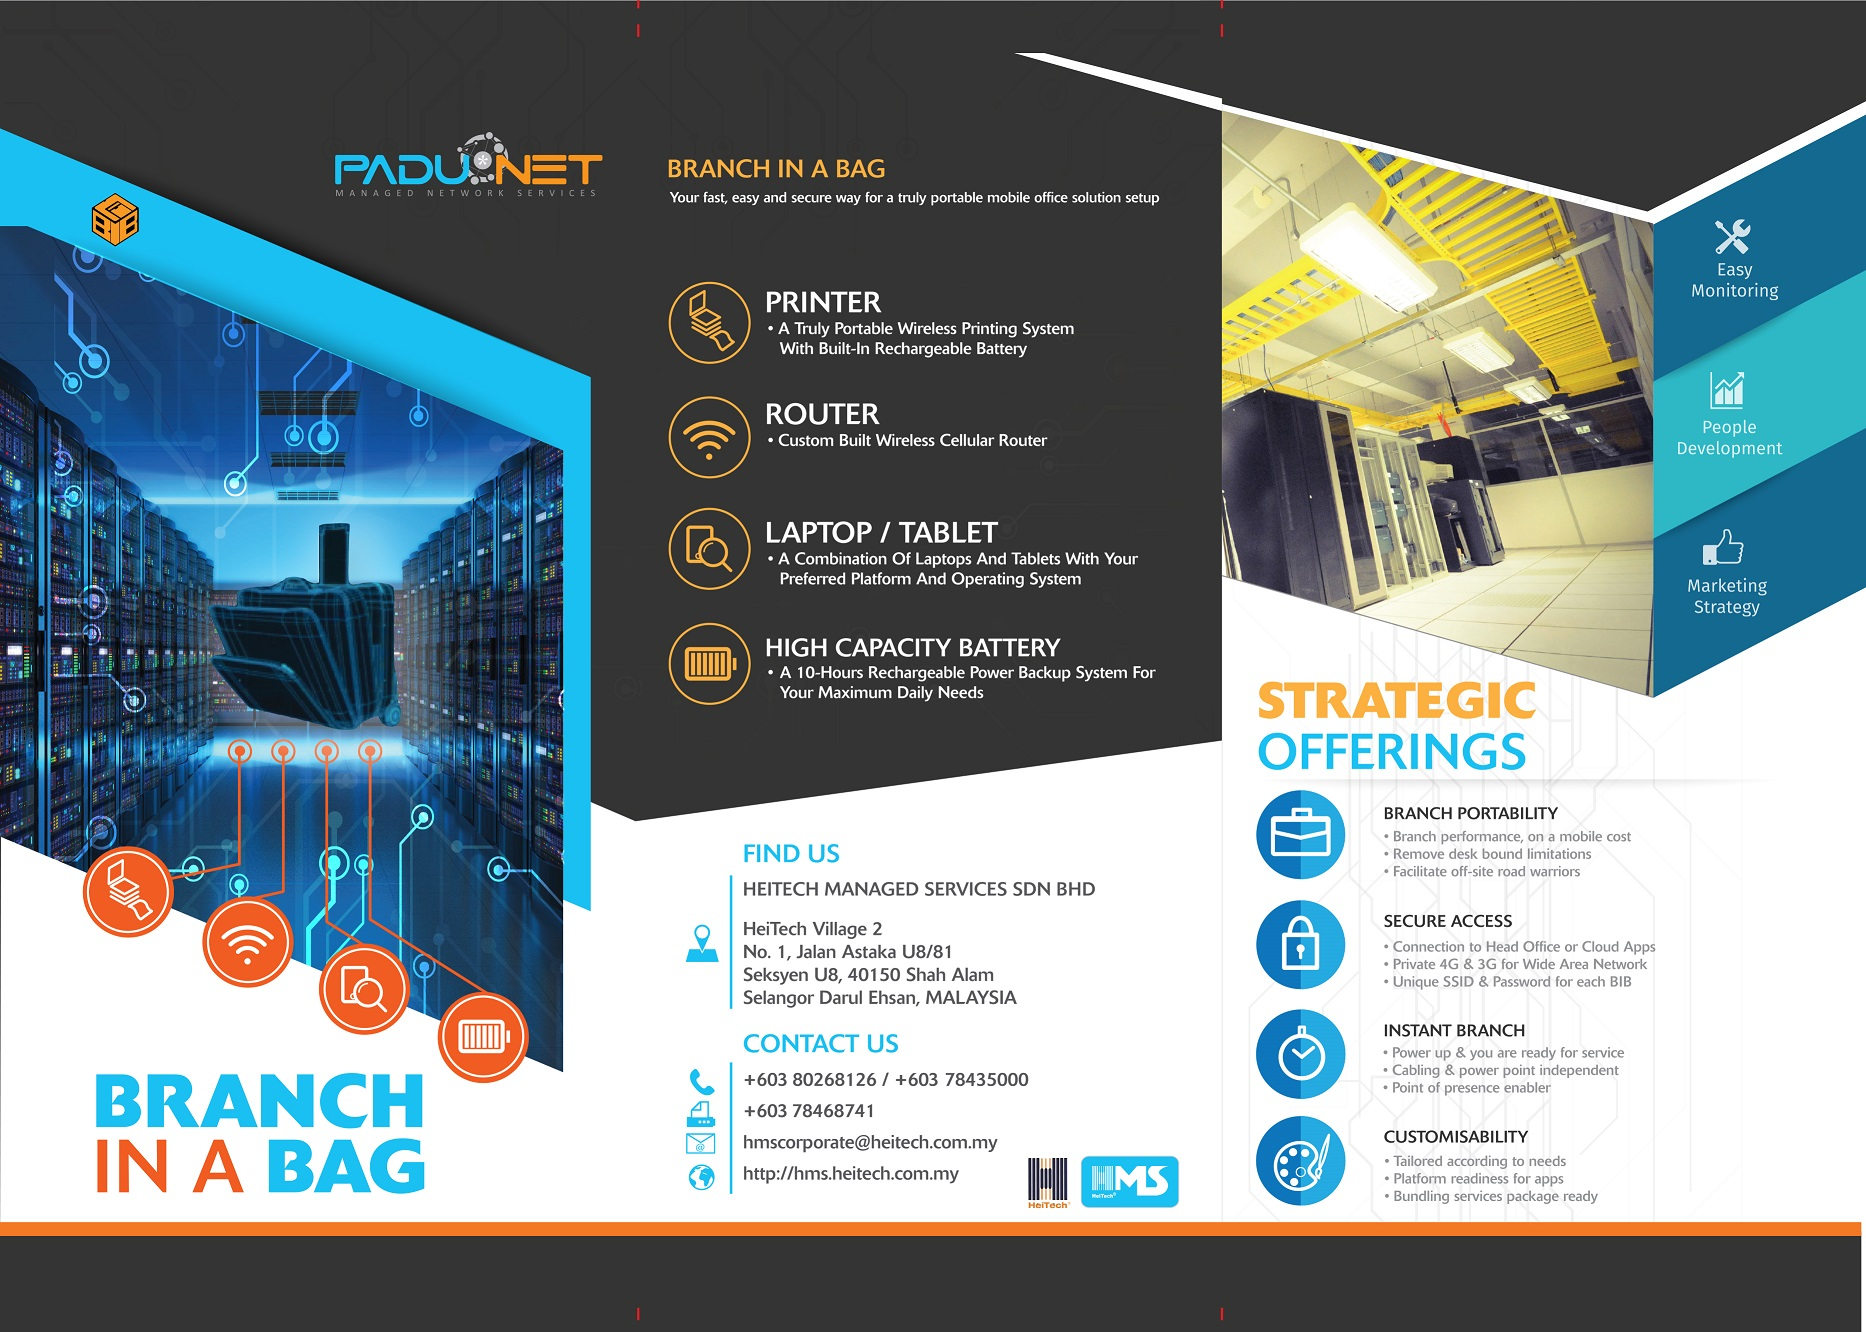 Padu*Net Branch-in-a-Bag & MWAS